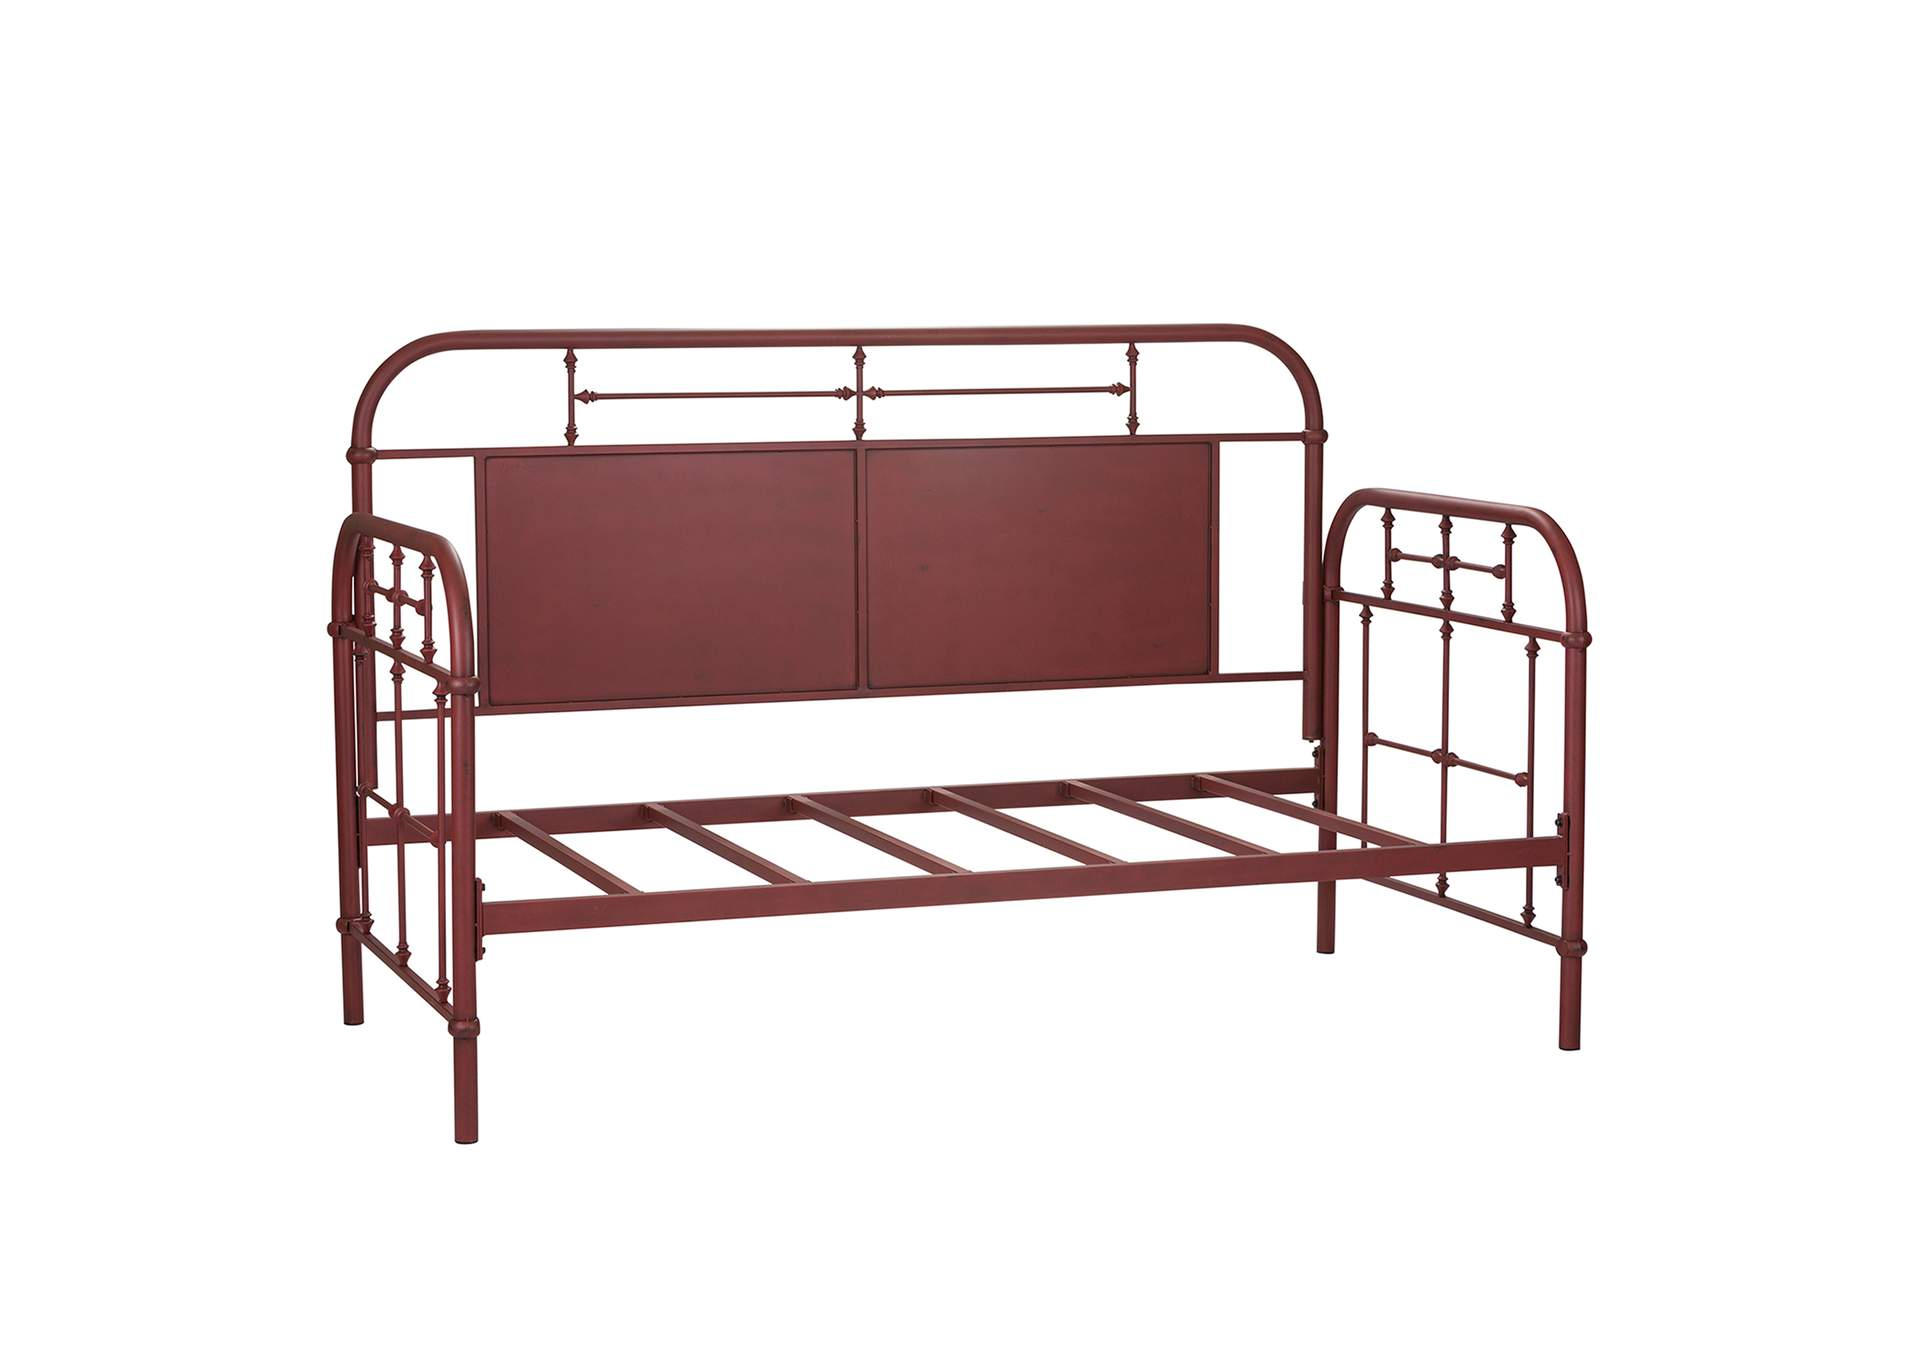 Vintage Series Distressed Metal Twin Metal Day Bed - Red,Liberty